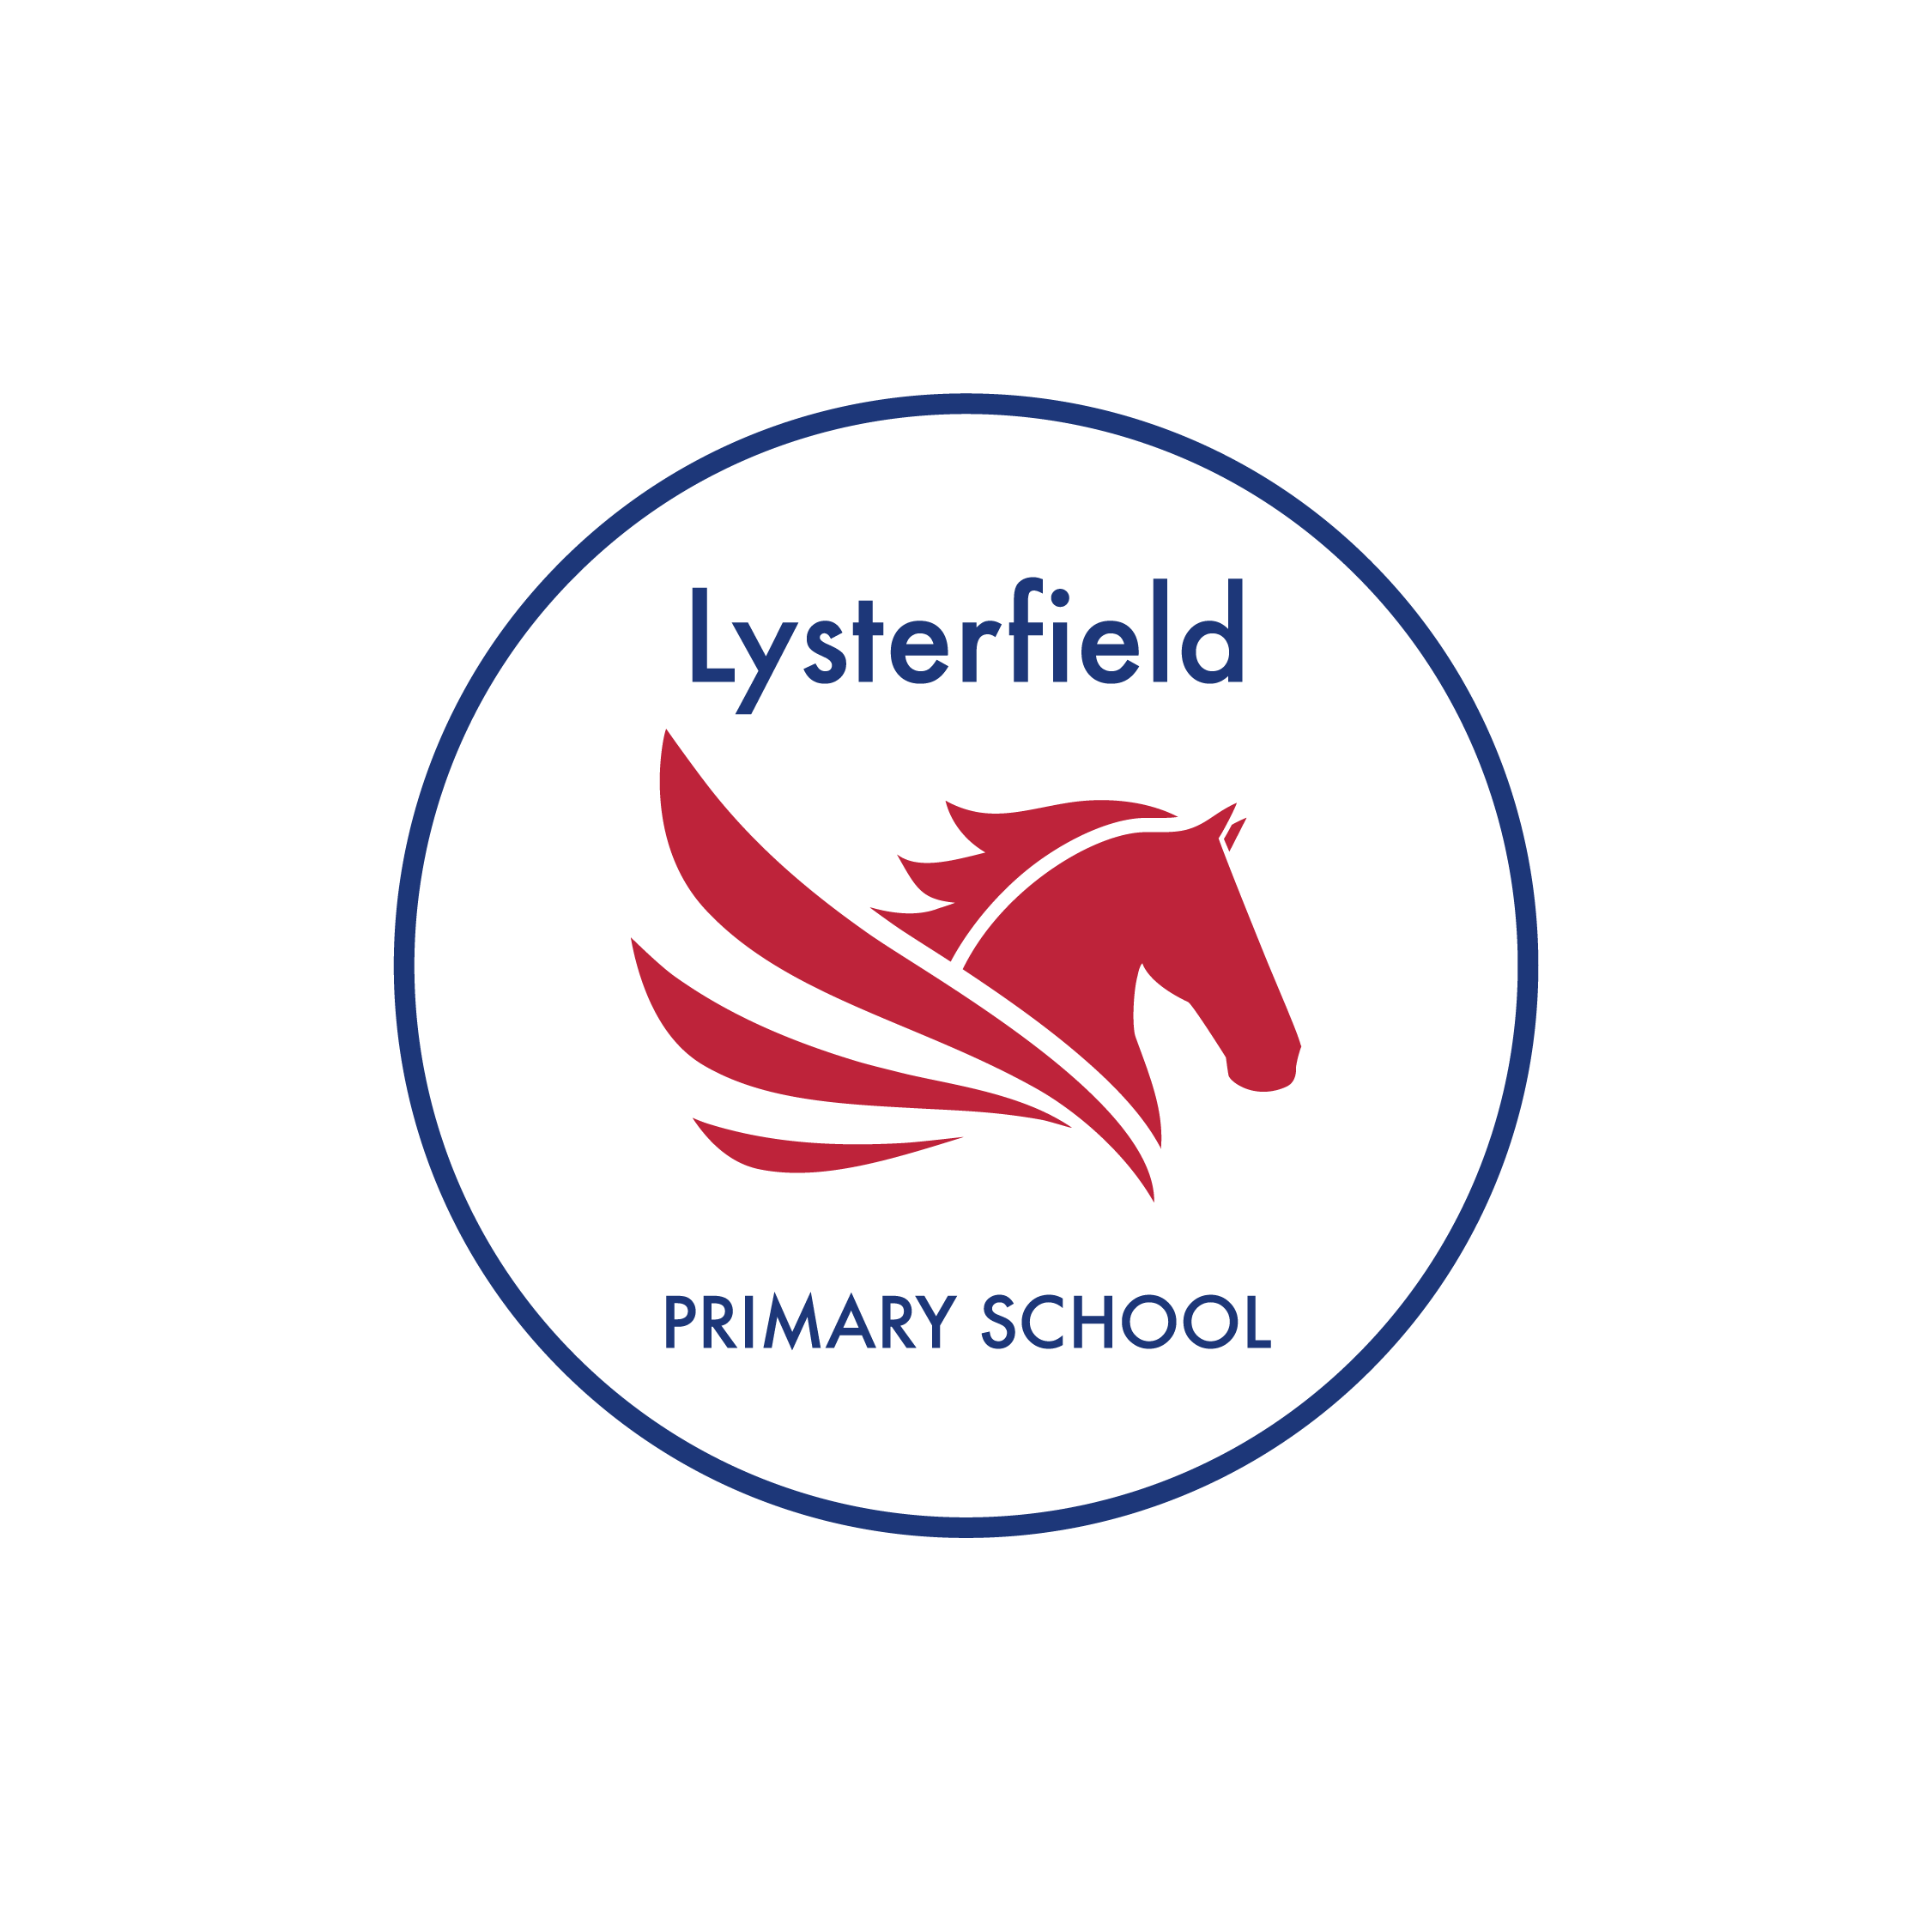 brand design for a primary school